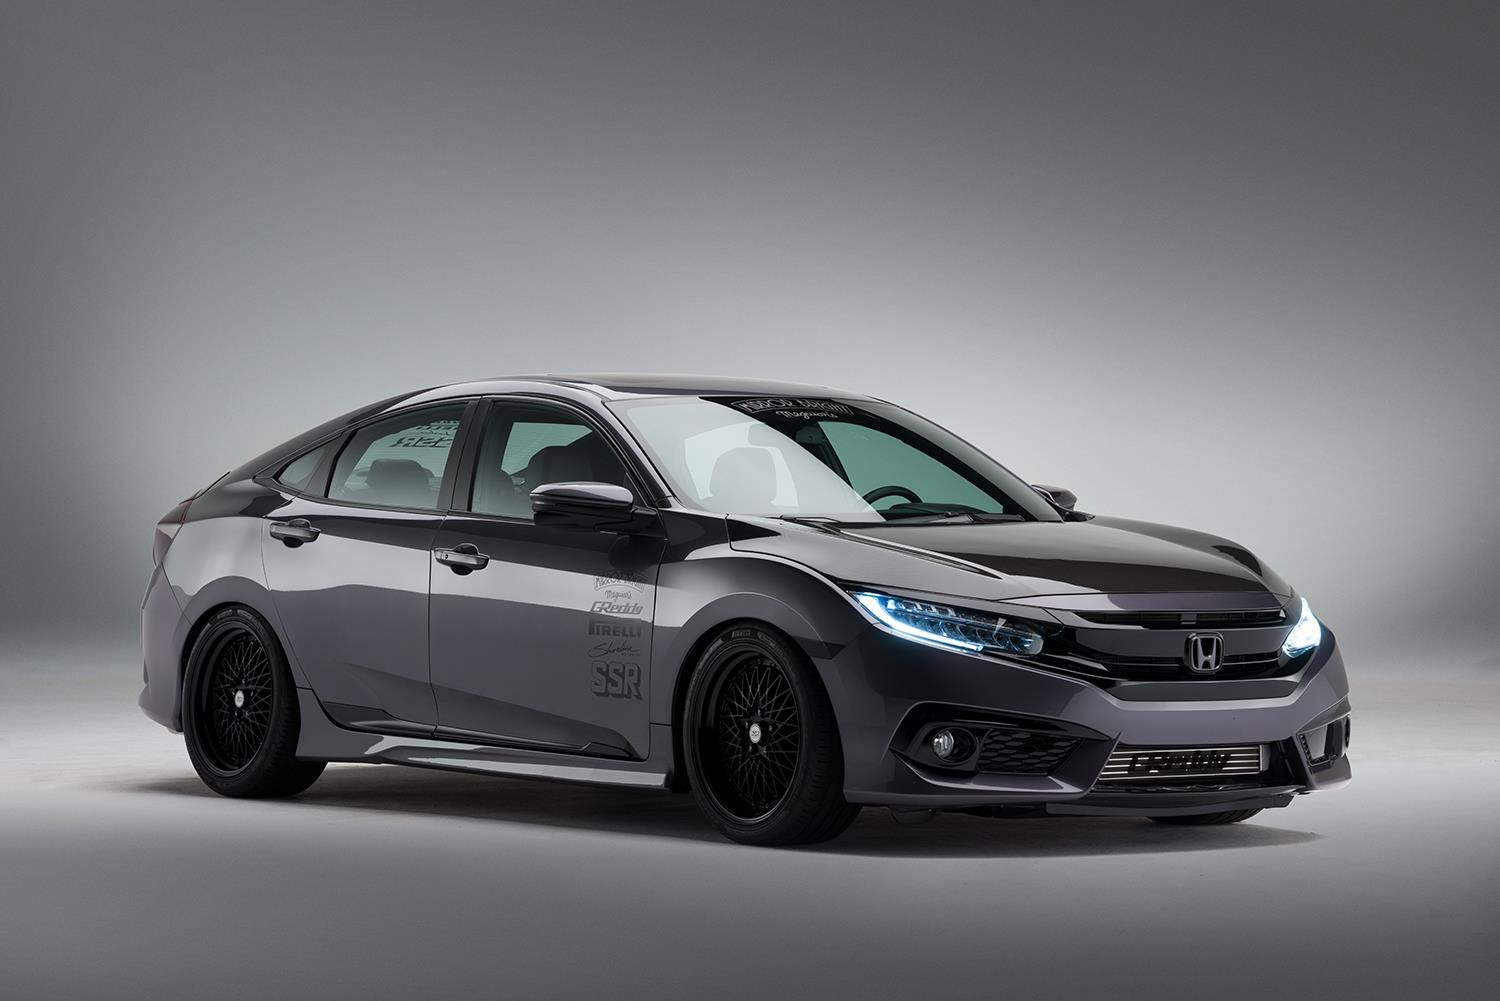 2016 Honda Meguiars Civic News And Information Research